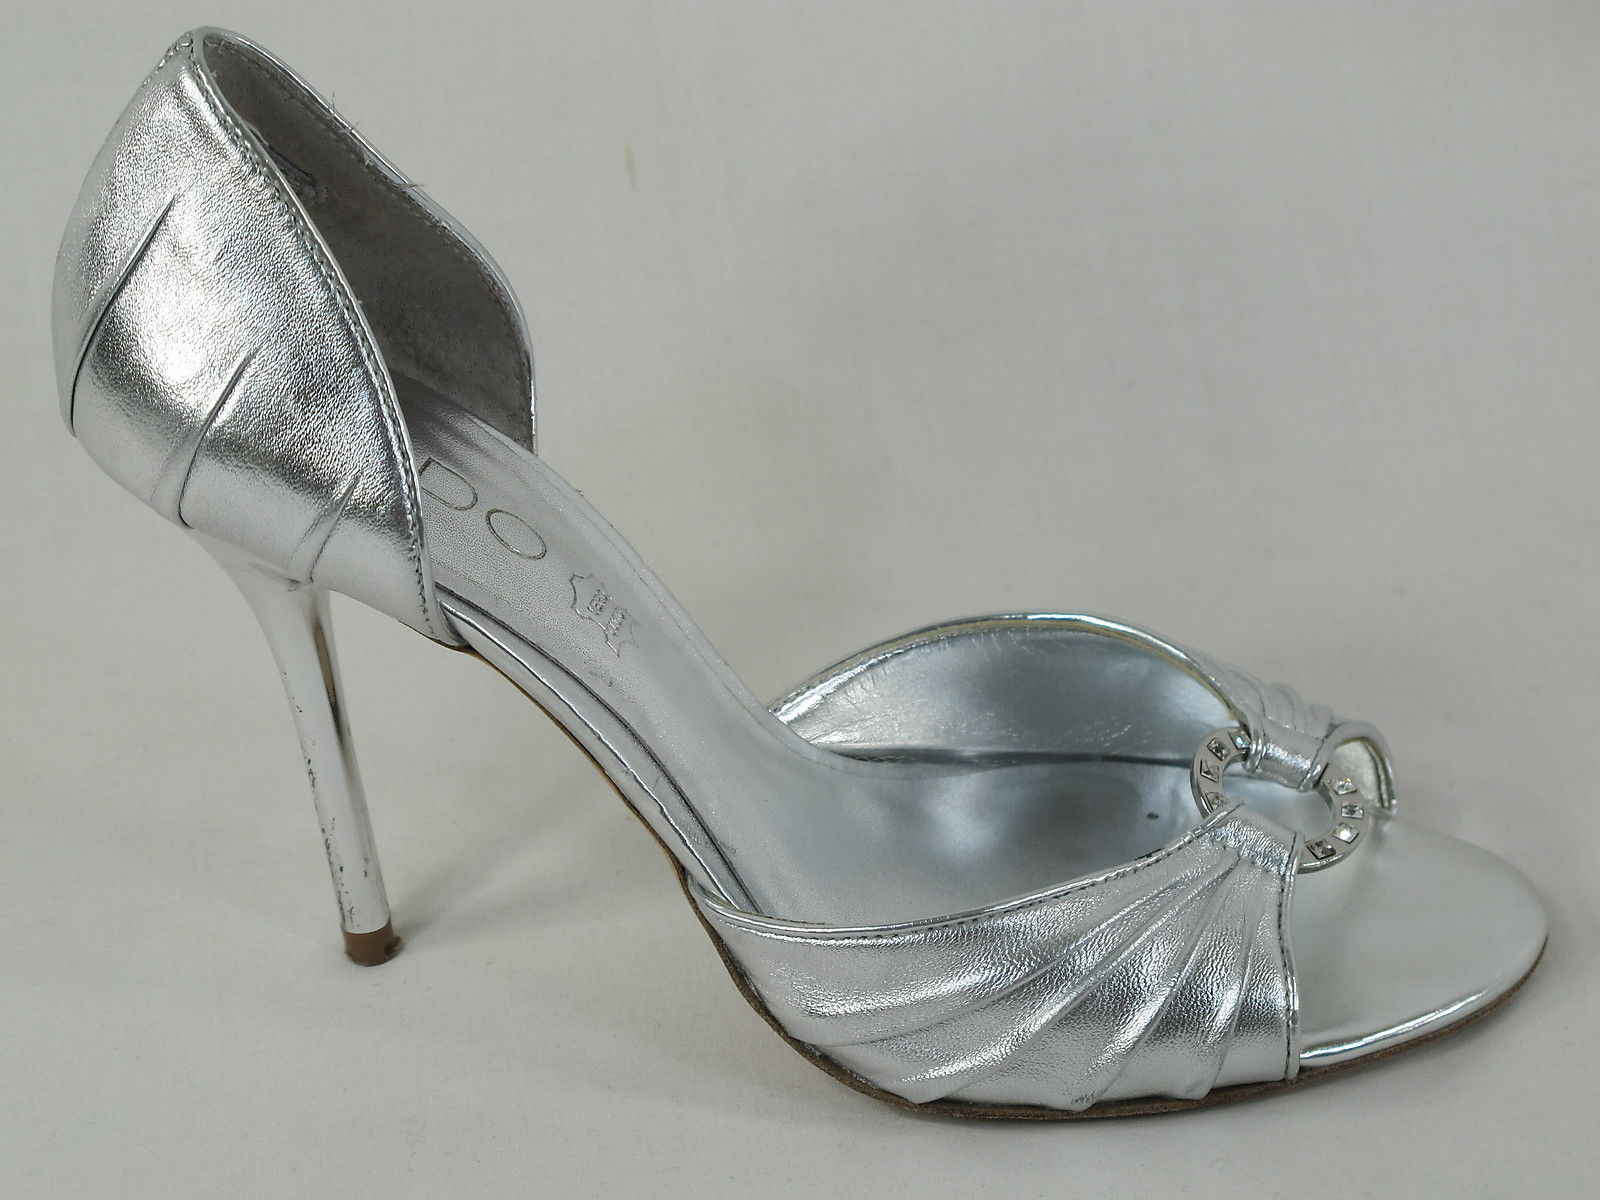 b51df46643e ALDO Silver Leather Open Toe Stiletto Heels and 28 similar items